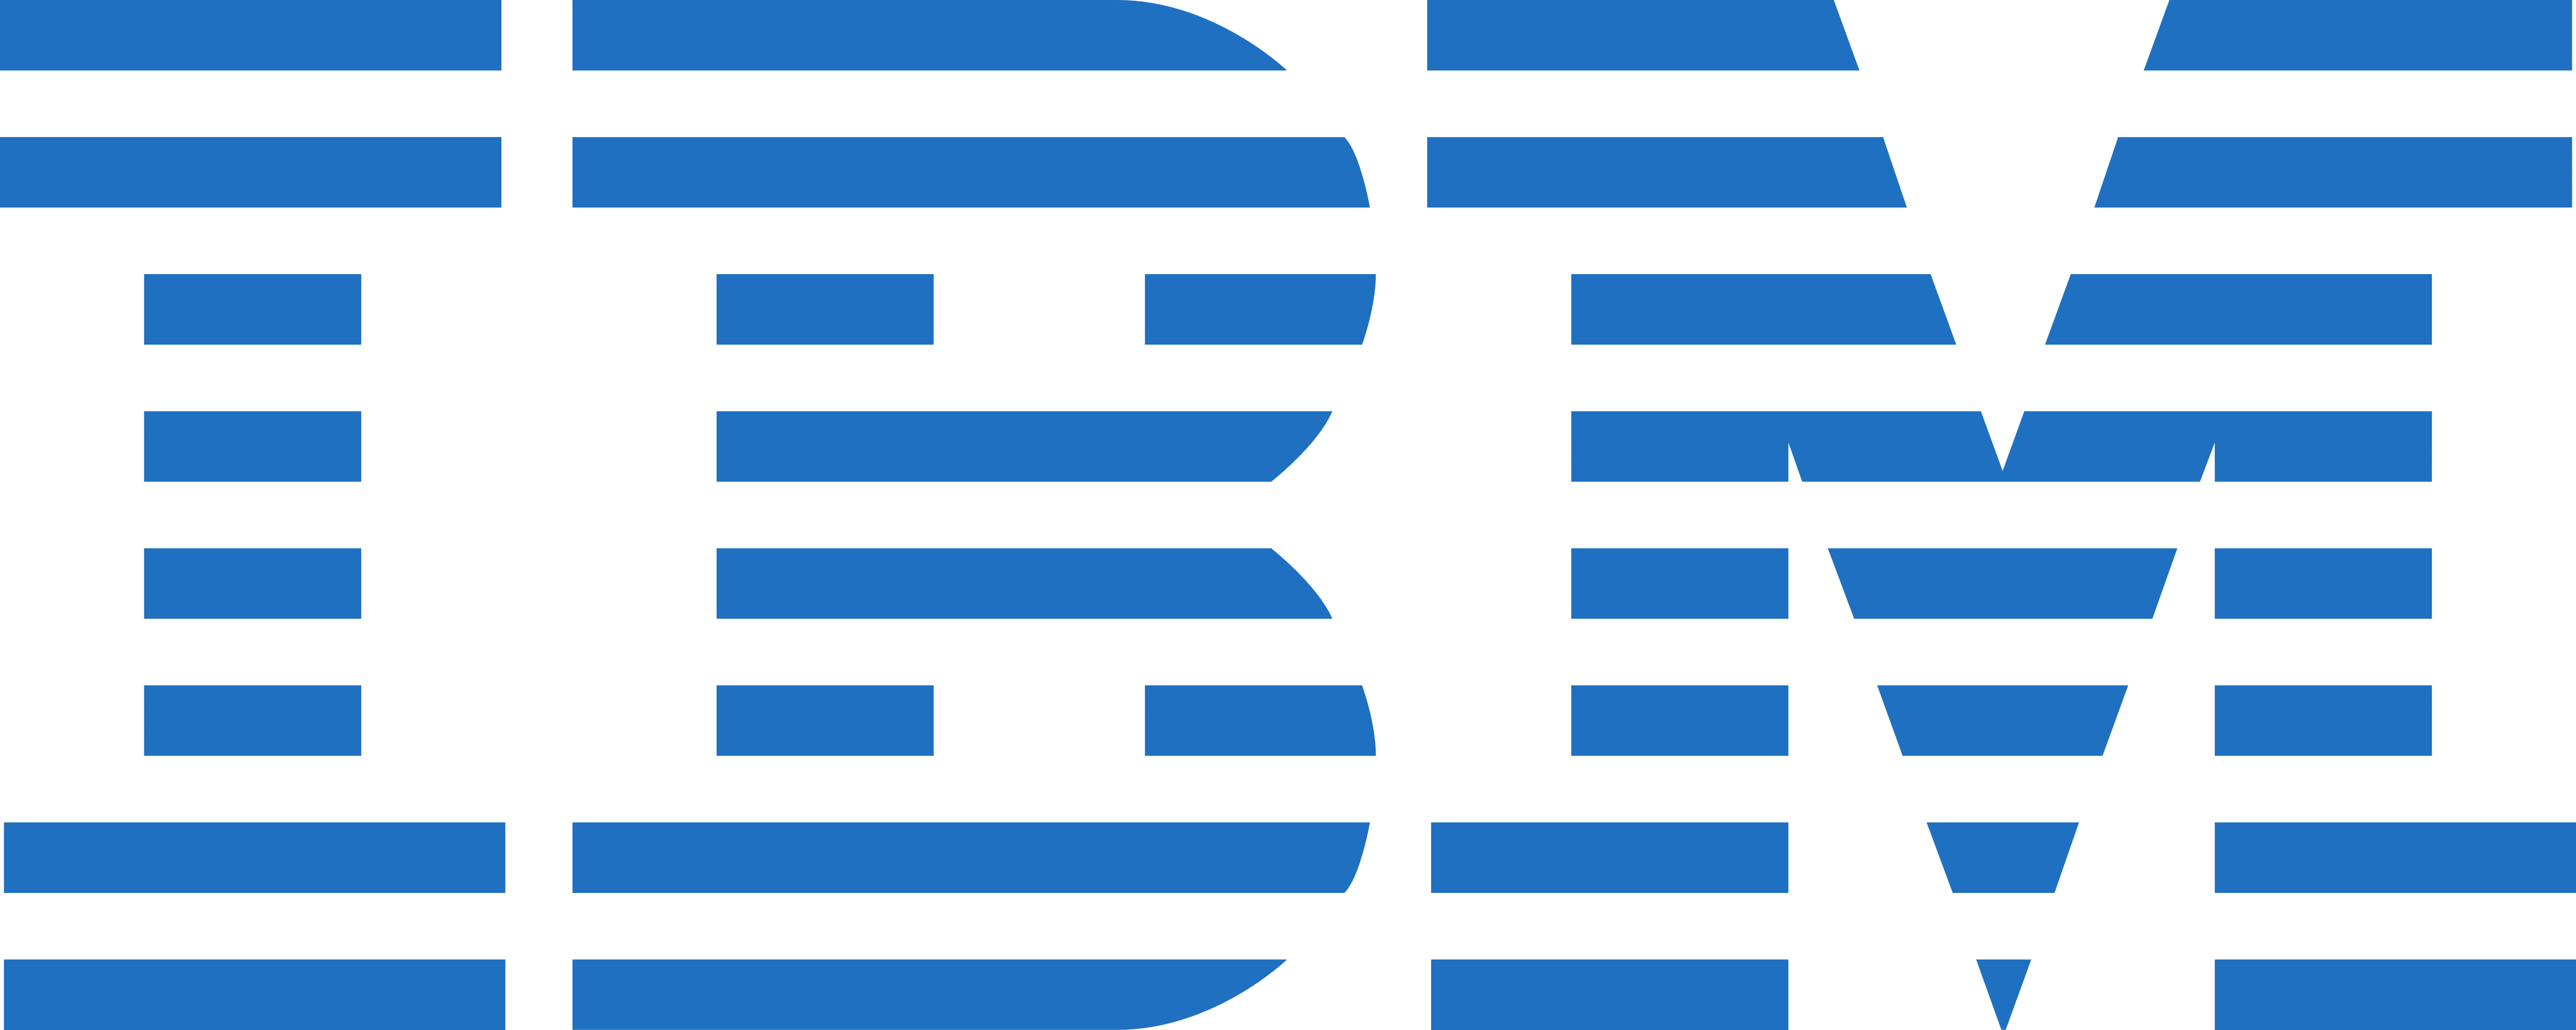 IBM | Reference CPK Gruppen